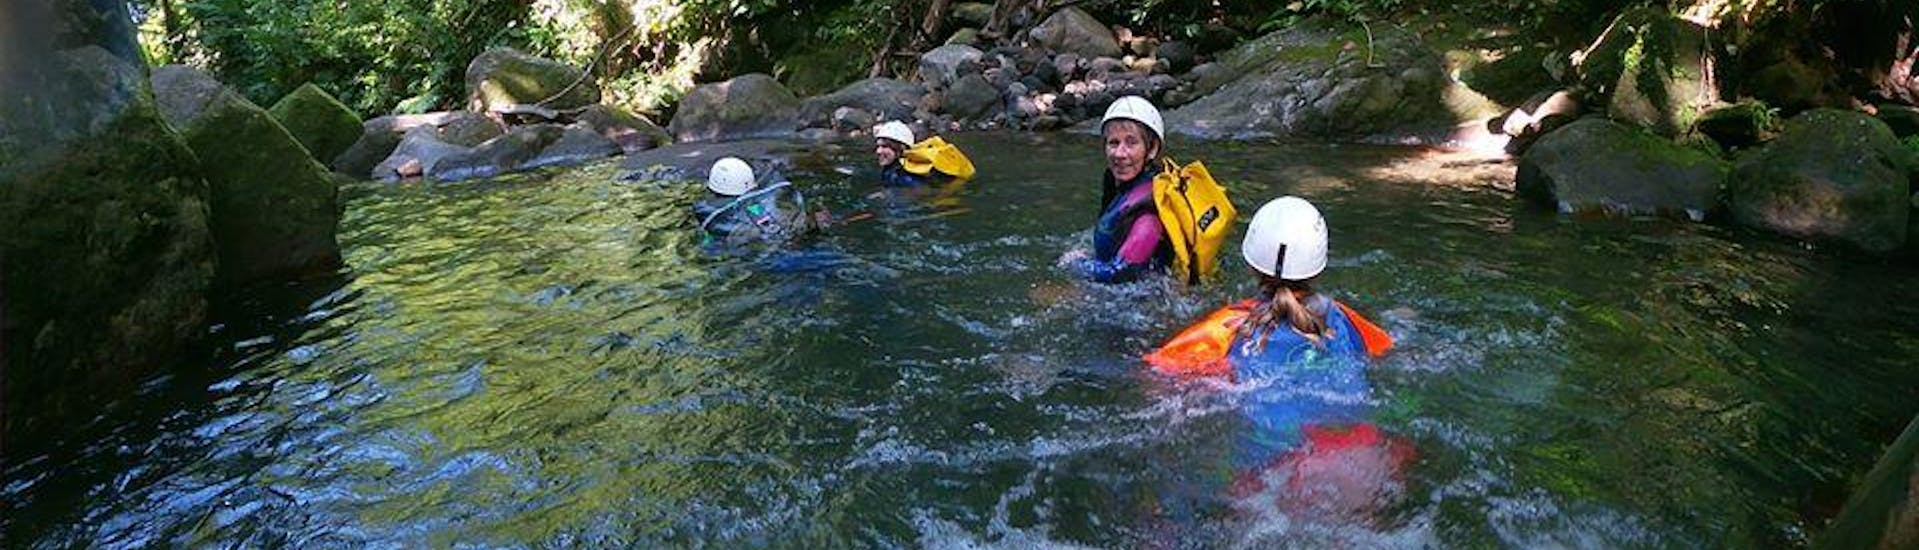 A group is enjoying the Canyoning in Ravine Chaude - Turquoise Waters activity operated by Vert Intense.